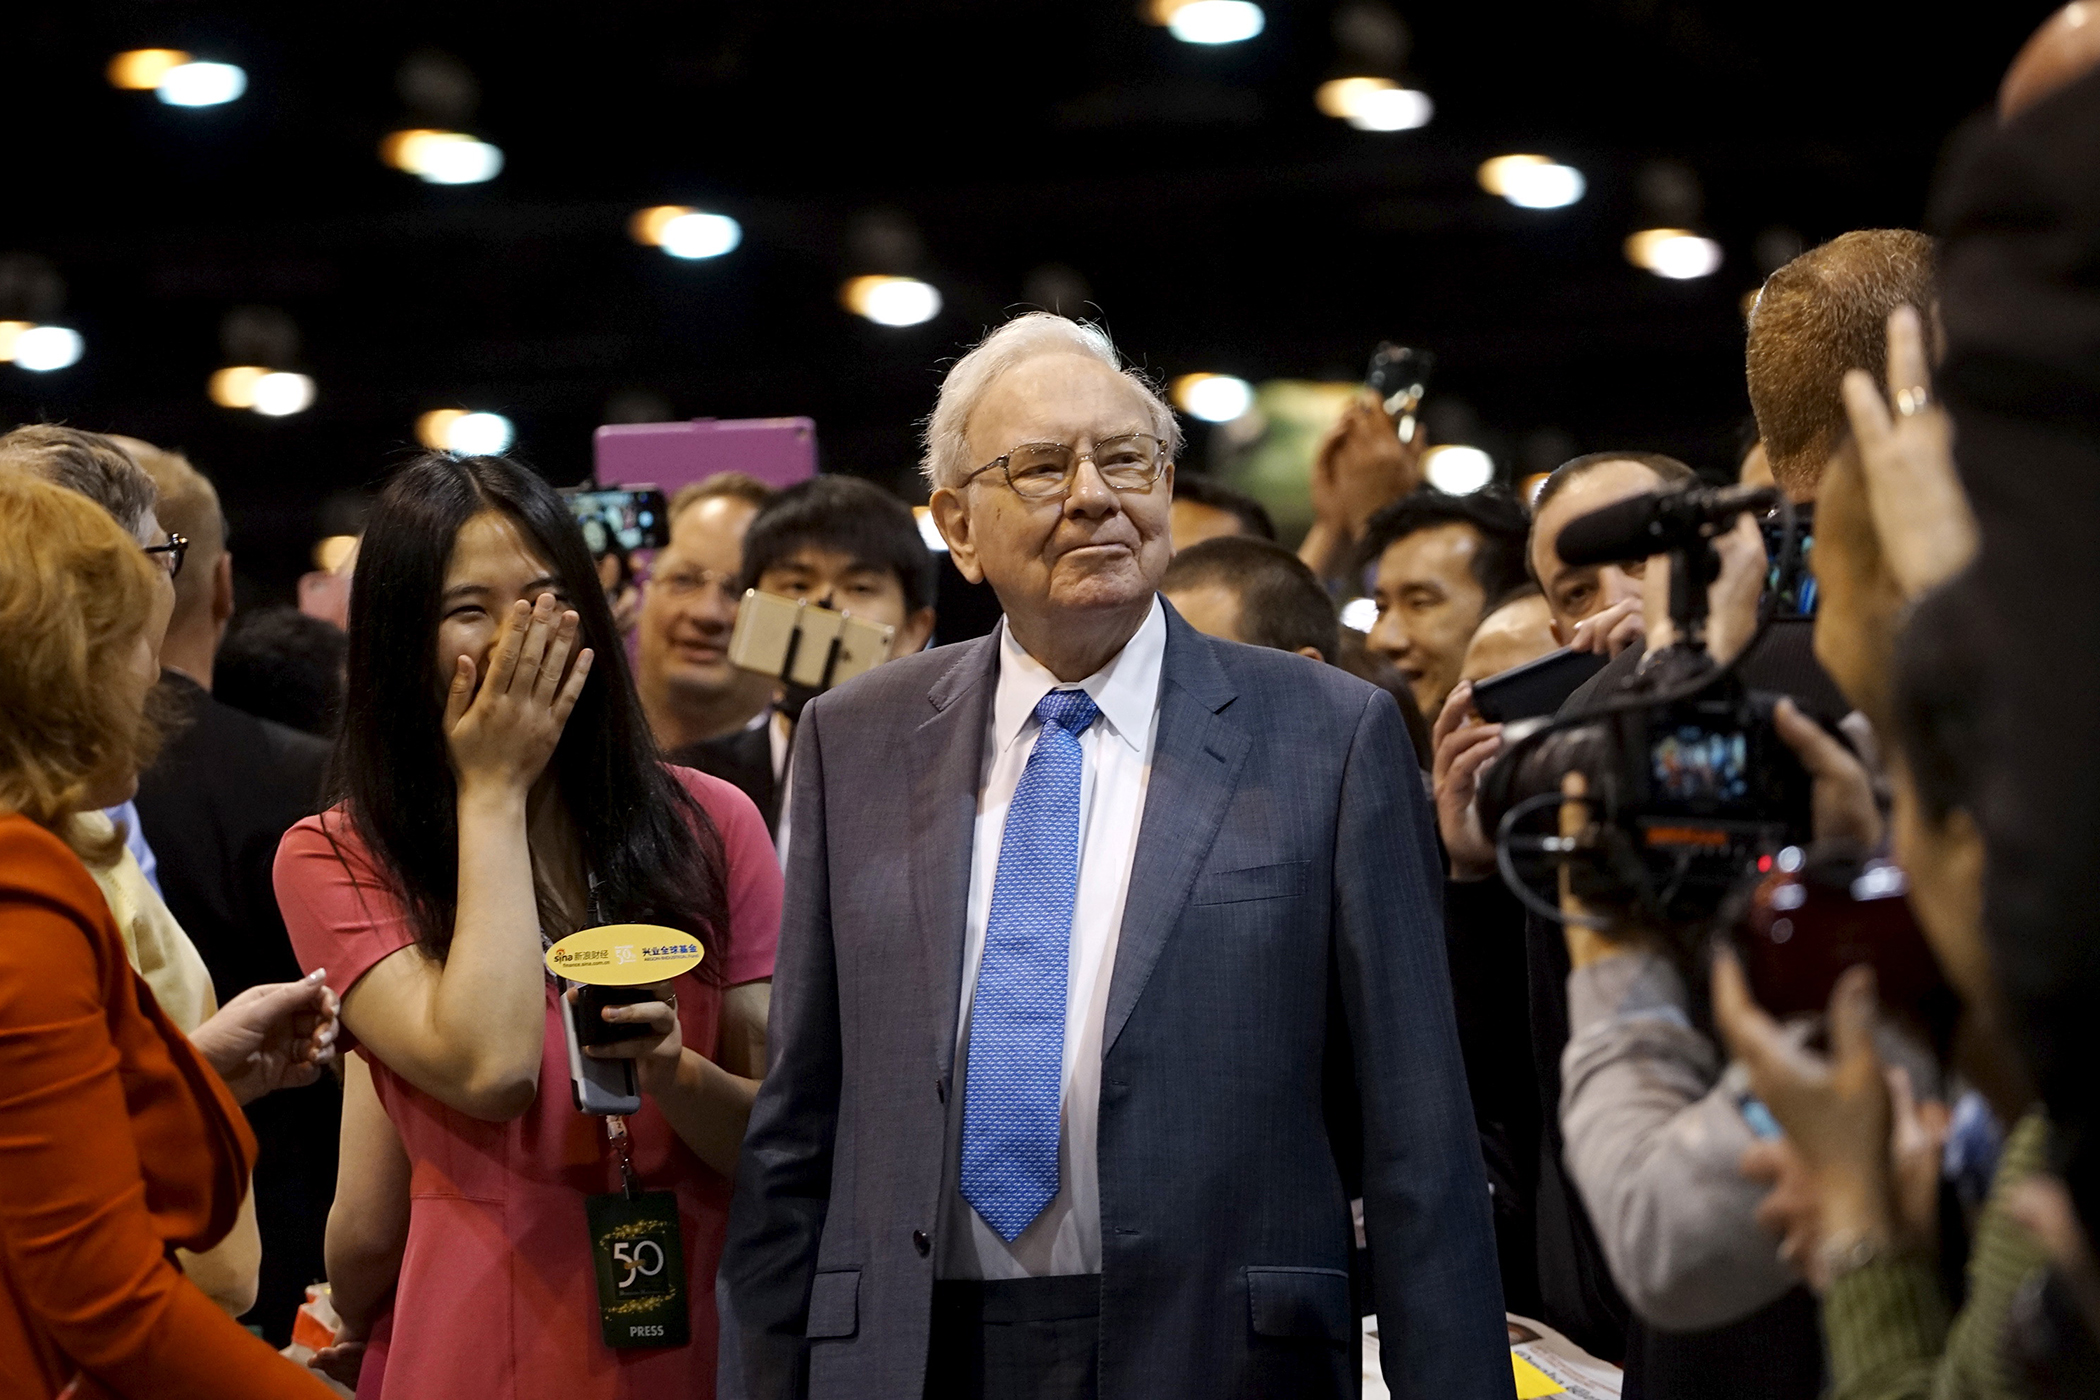 Berkshire Hathaway CEO Warren Buffett reacts after throwing in a newspaper throwing contest prior to the Berkshire annual meeting in Omaha, Nebraska May 2, 2015.